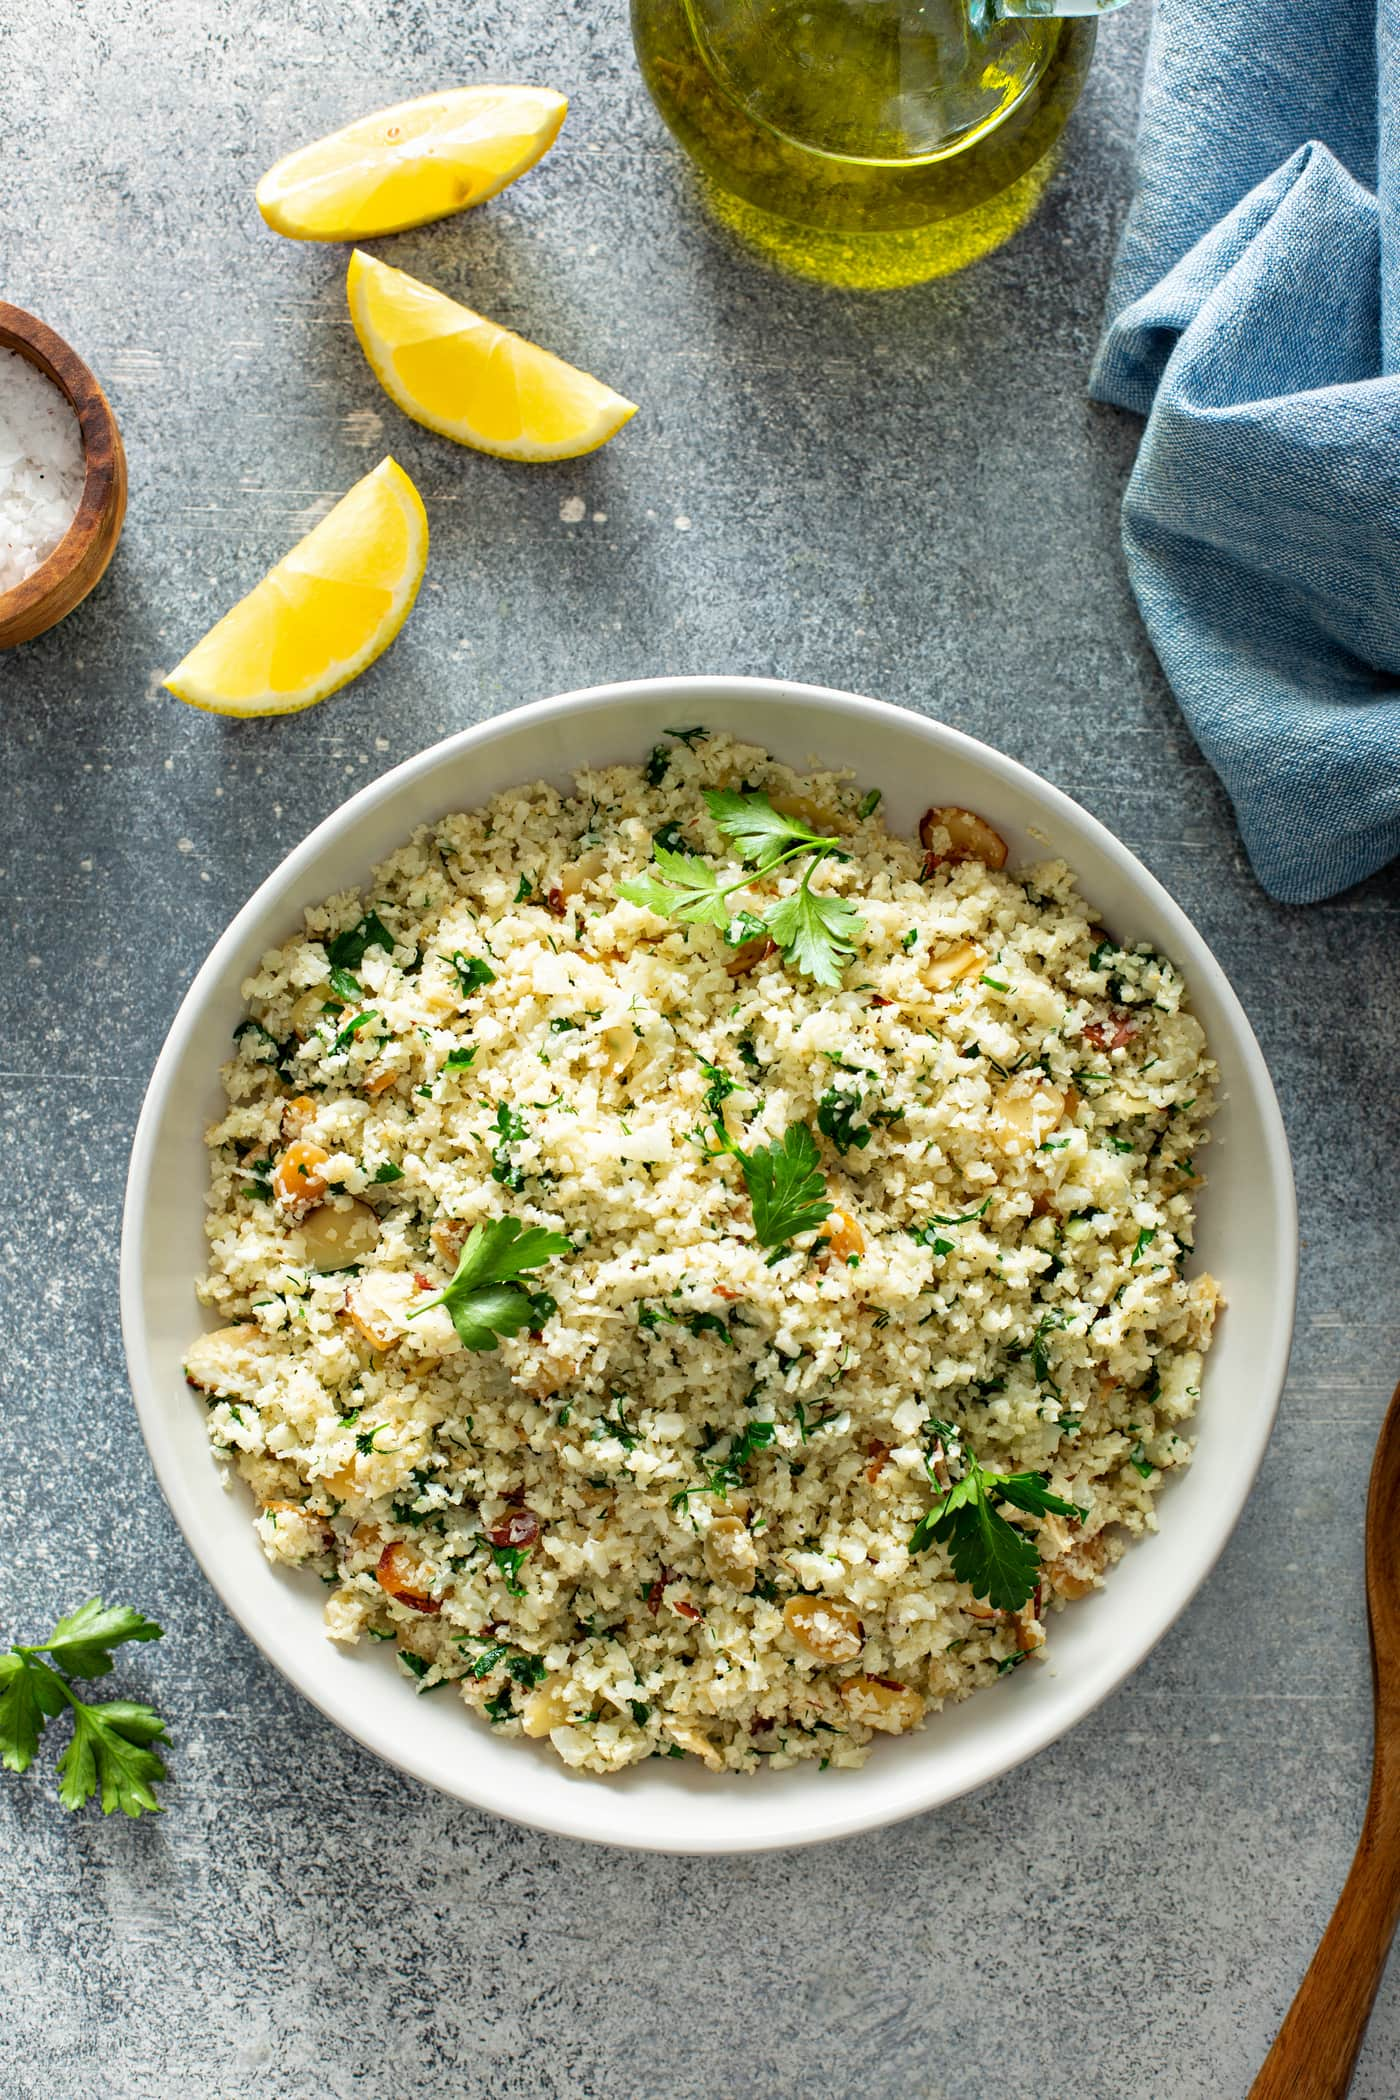 A white serving bowl filled with garlic herb cauliflower rice. There are green herbs and sliced almonds in the rice. There is a container of salt and several lemon wedges and a blue linen napkin in the background.